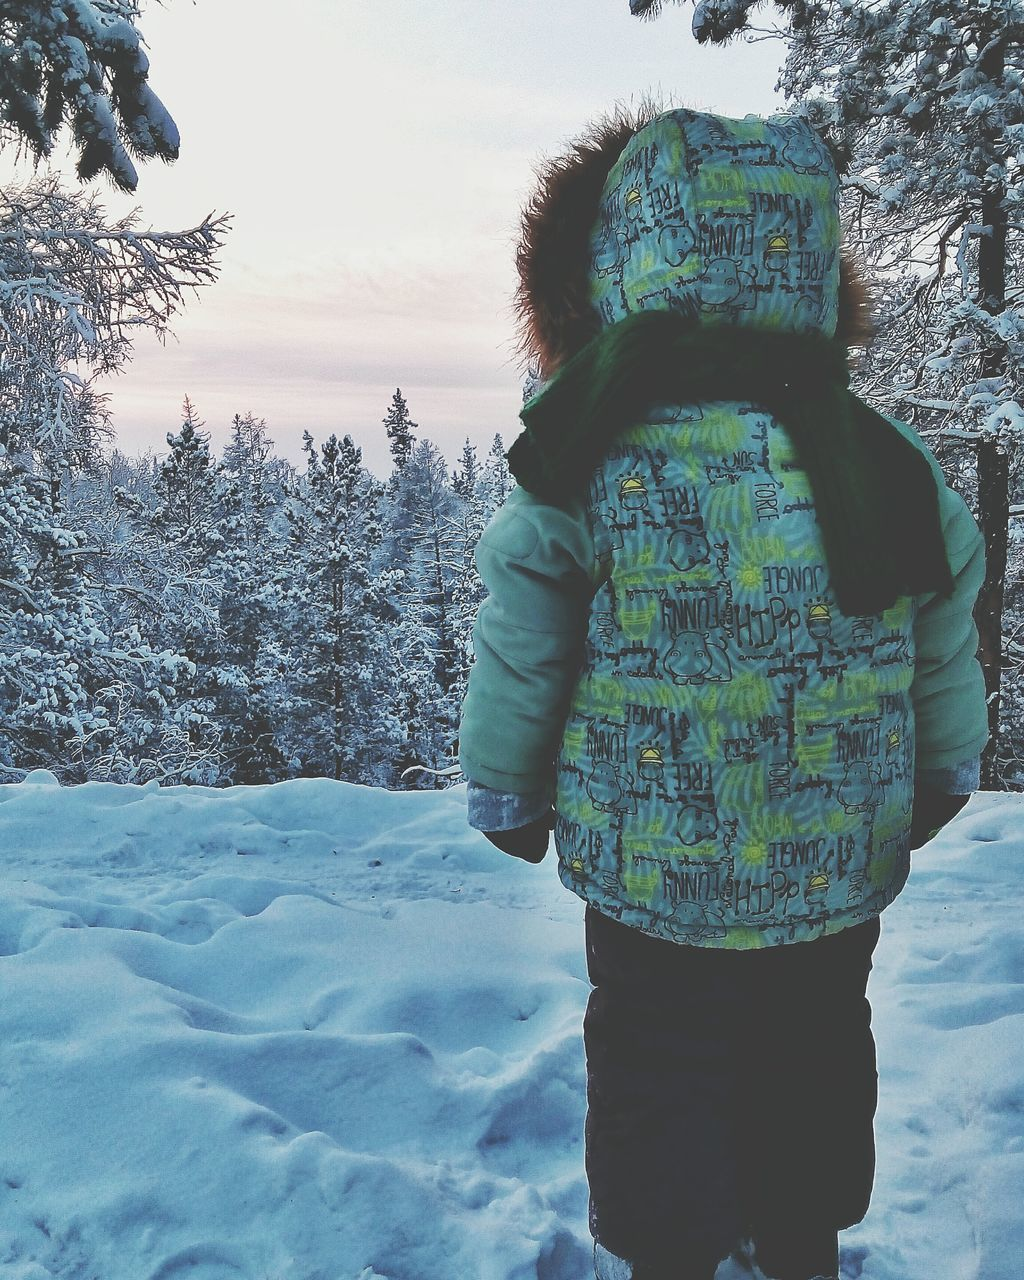 winter, snow, rear view, cold temperature, real people, one person, standing, weather, three quarter length, leisure activity, nature, warm clothing, lifestyles, day, outdoors, field, beauty in nature, women, tree, full length, sky, people